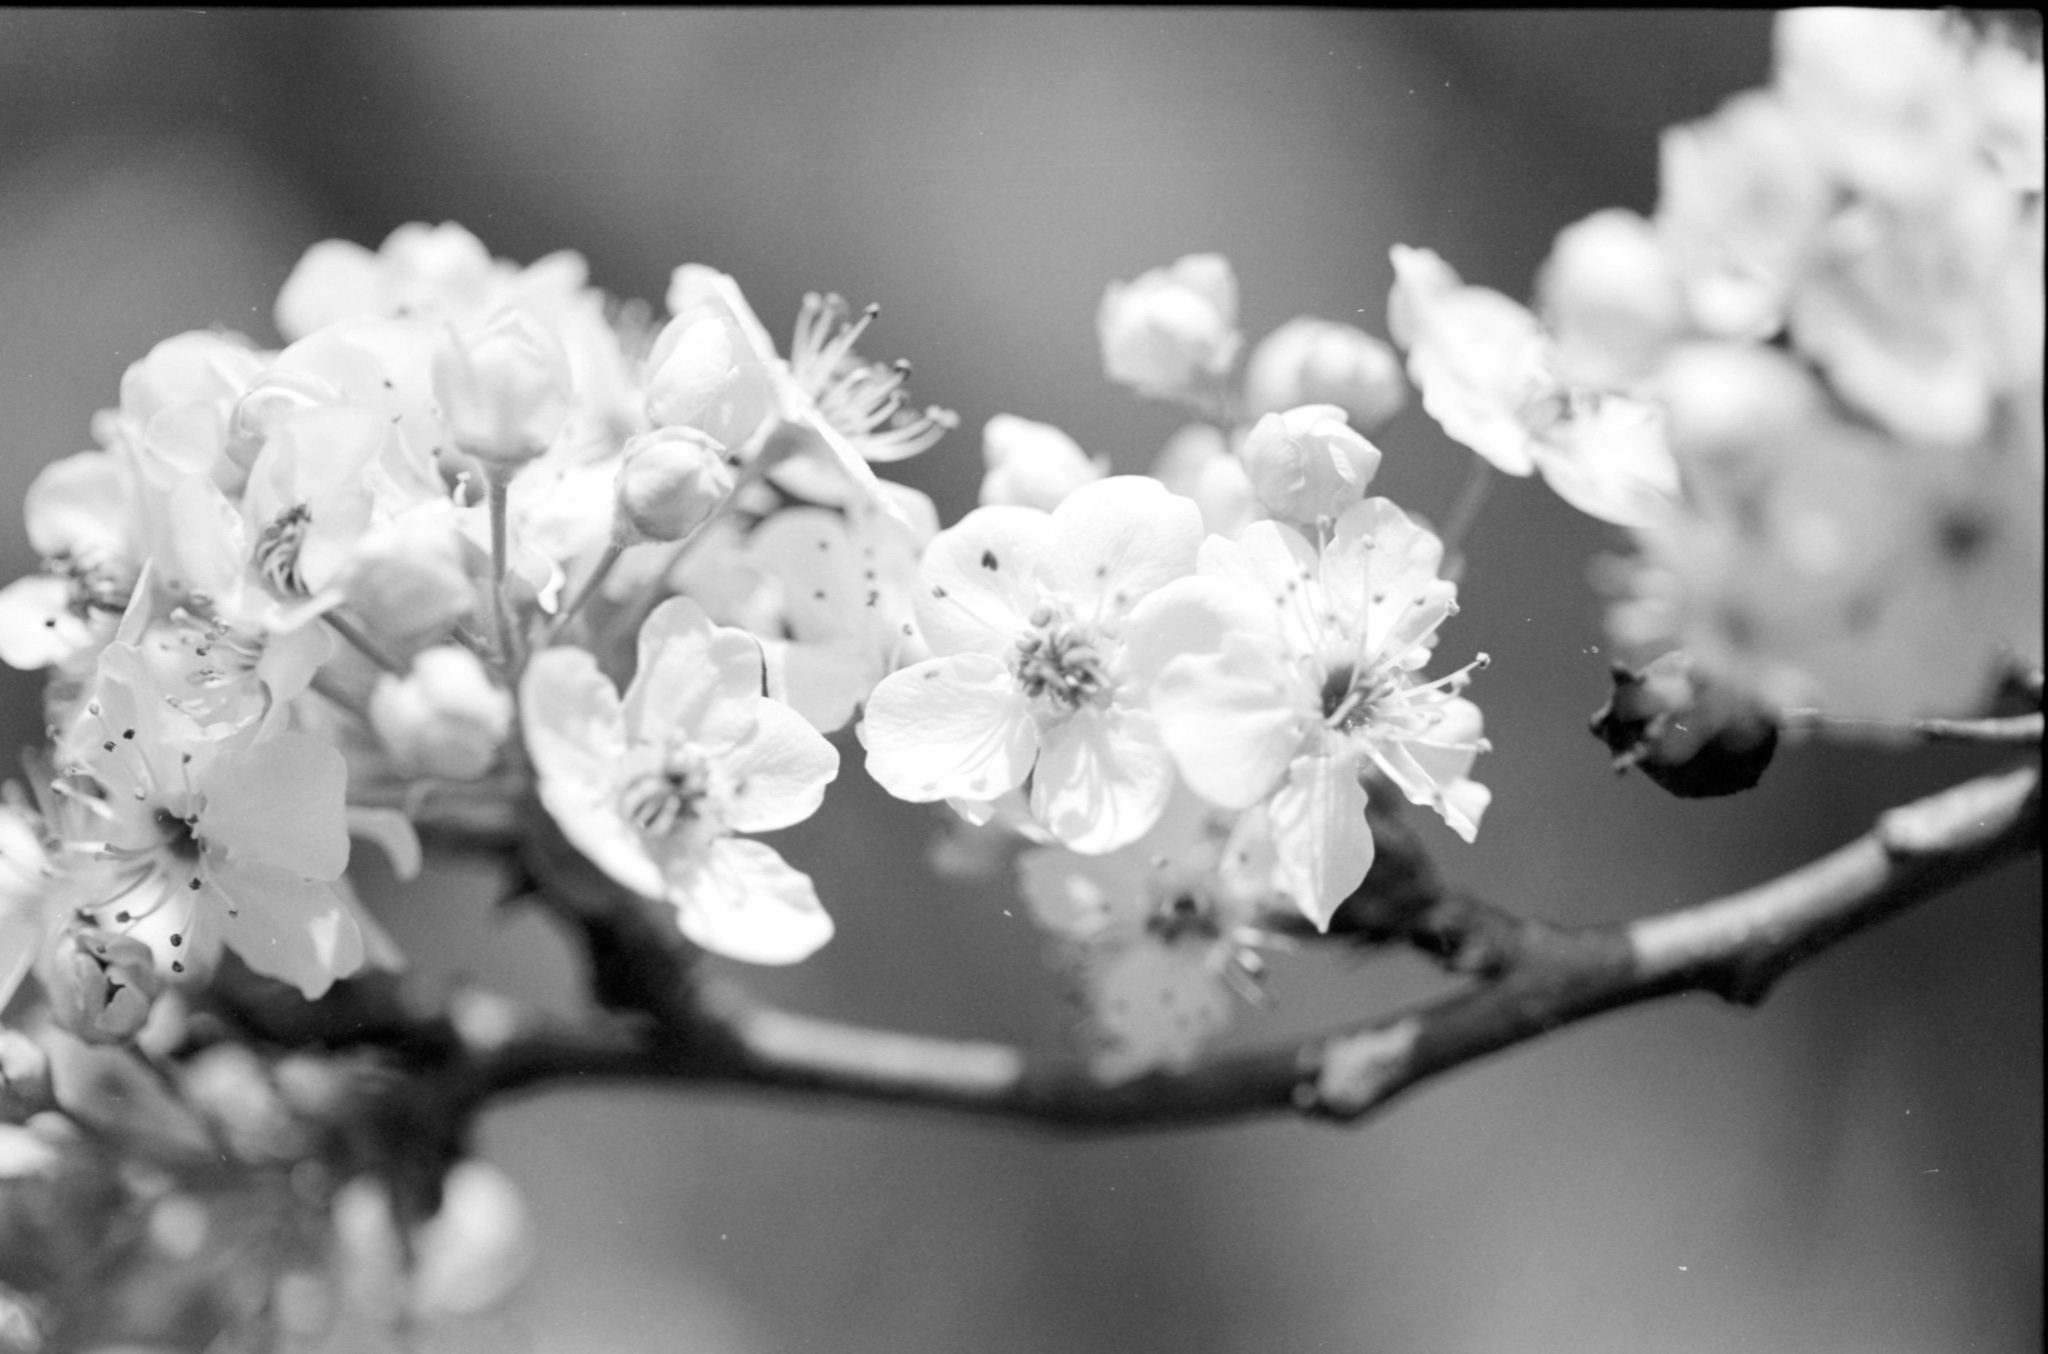 @bsanfordjr · 20h Replying to @ILFORDPhoto Bradford pear in bloom on Delta 100. #fridayfavourites #springinbandw #ilfordphoto